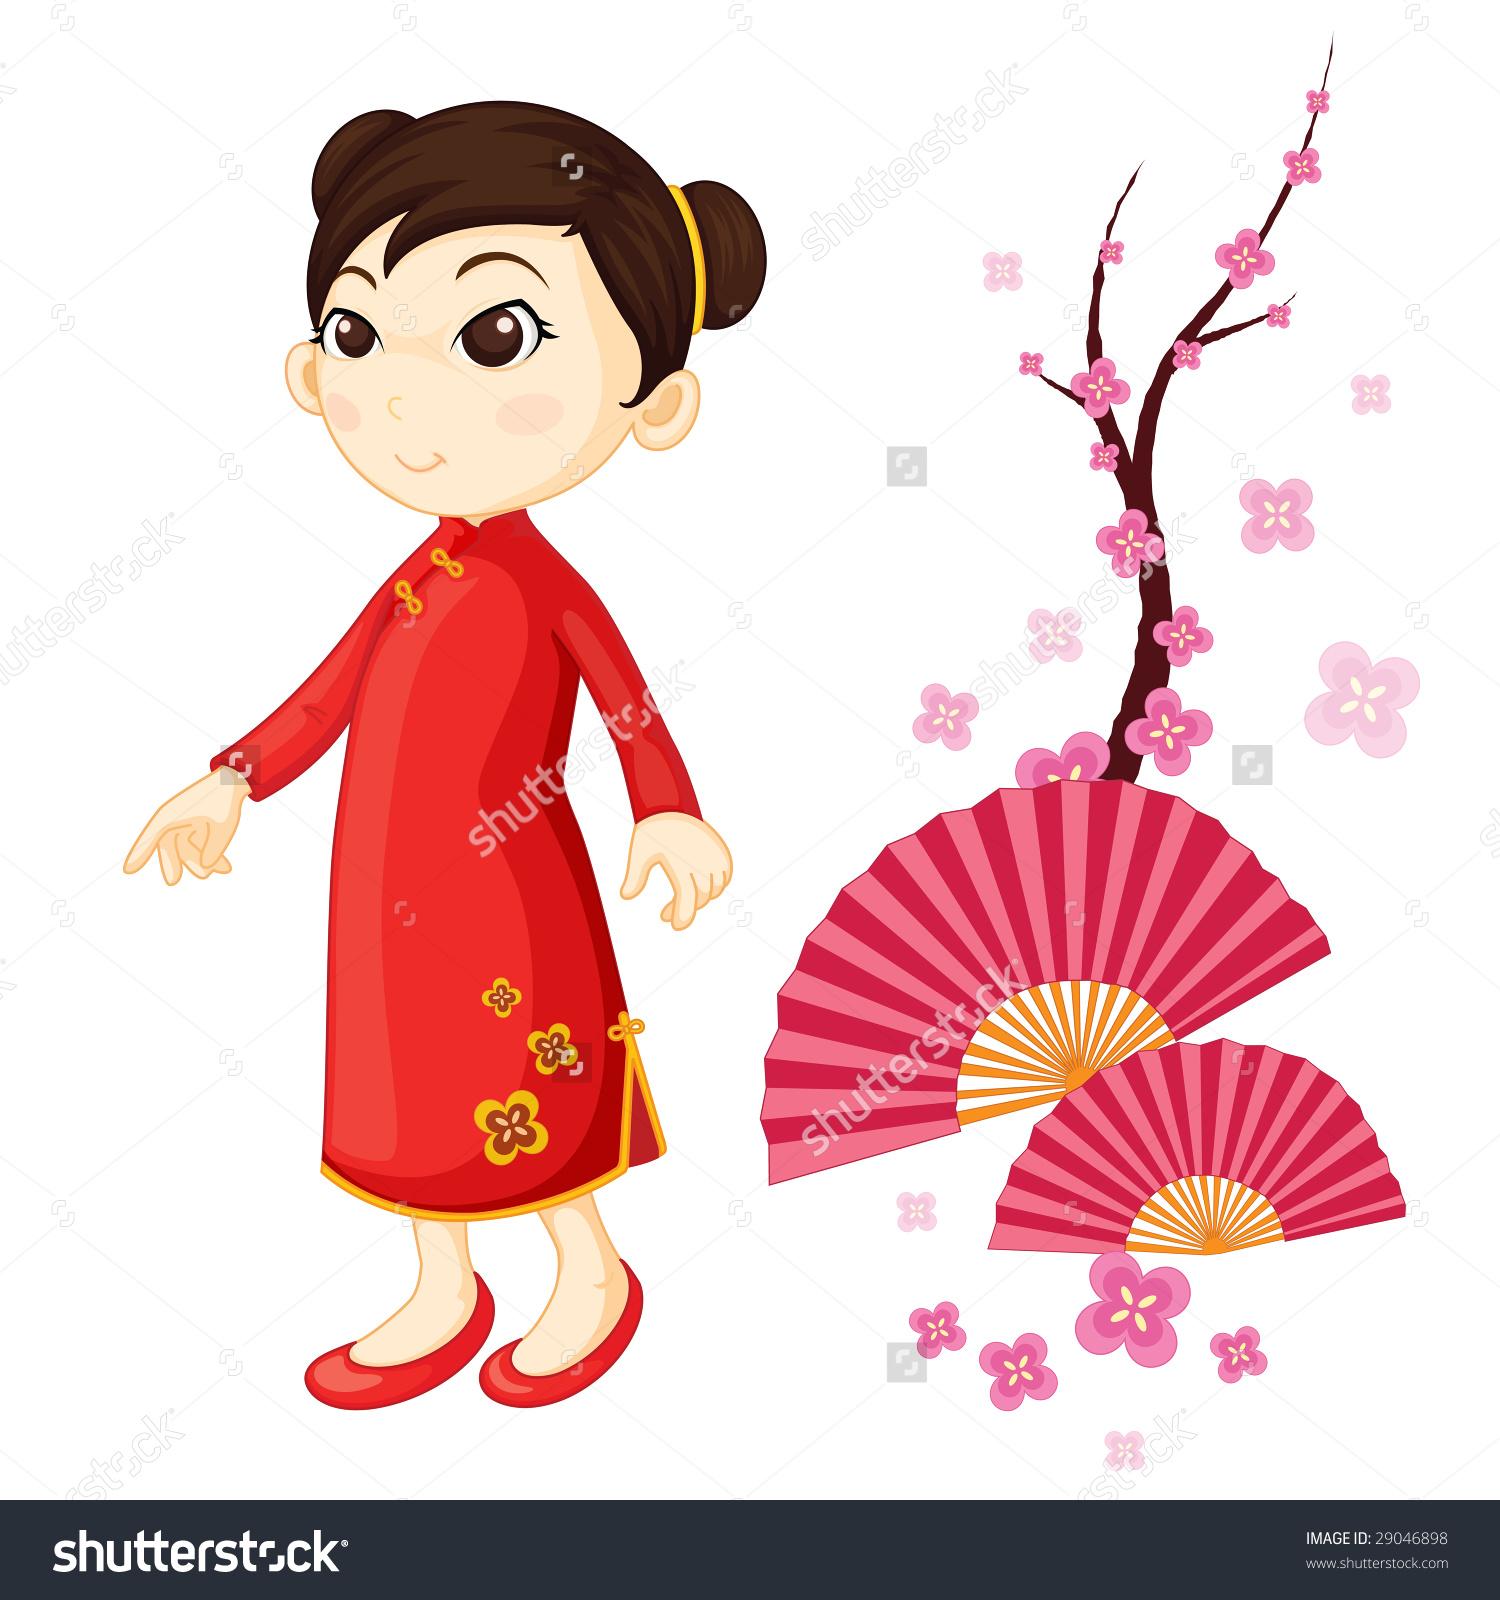 Kimono clipart japanese man Girl Illustration Stock Chinese collections